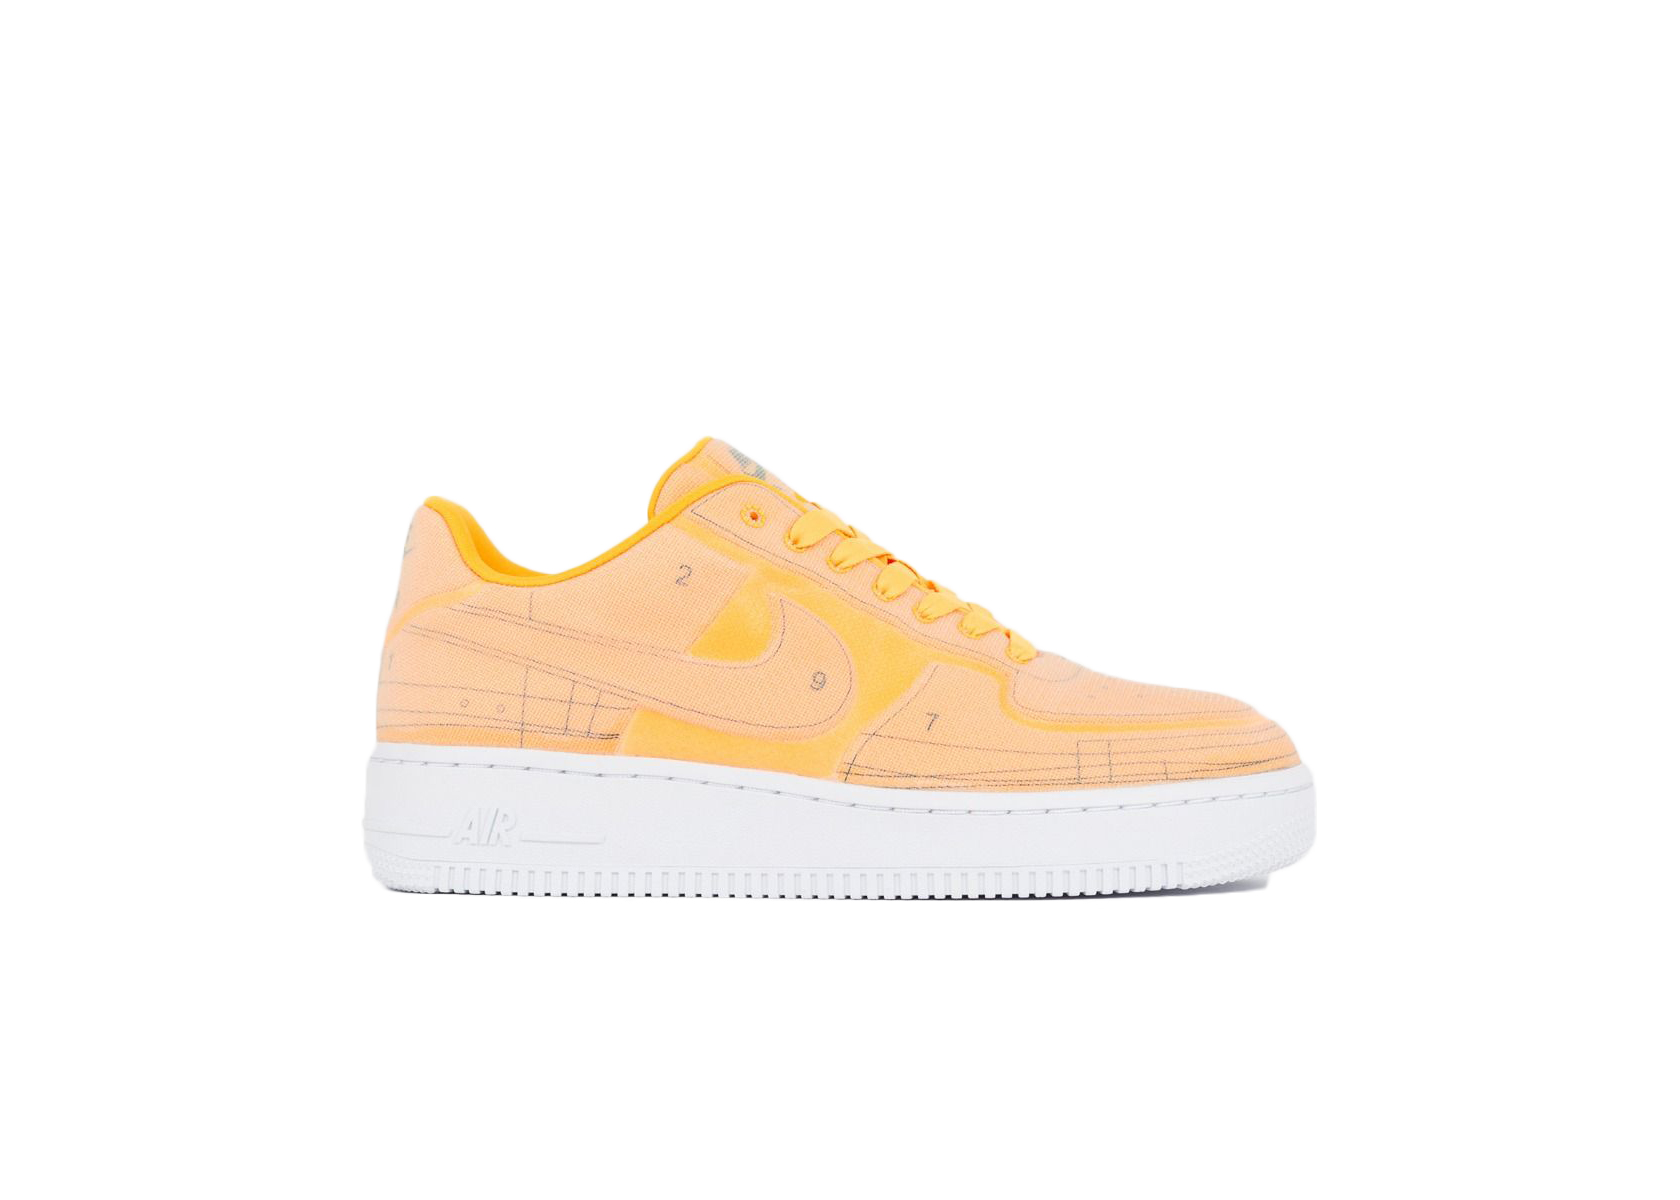 Nike Air Force 1 Low 07 LX Blueprint Laser Orange (W)